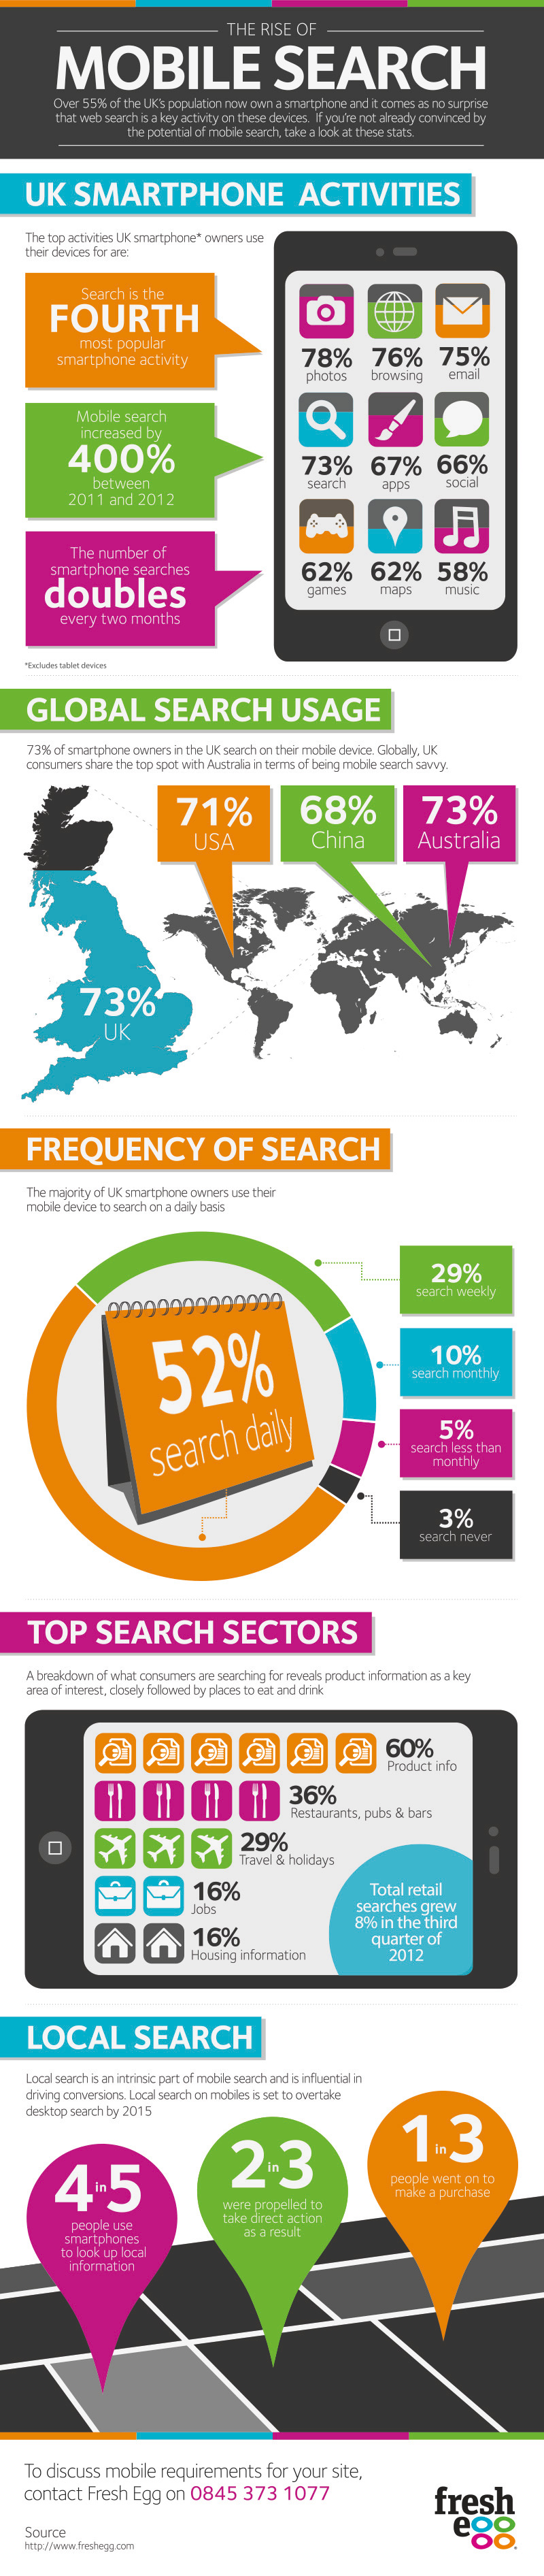 Mobile Search Statistics Mobile Search Statistics and Smartphone Search Stats for 2013